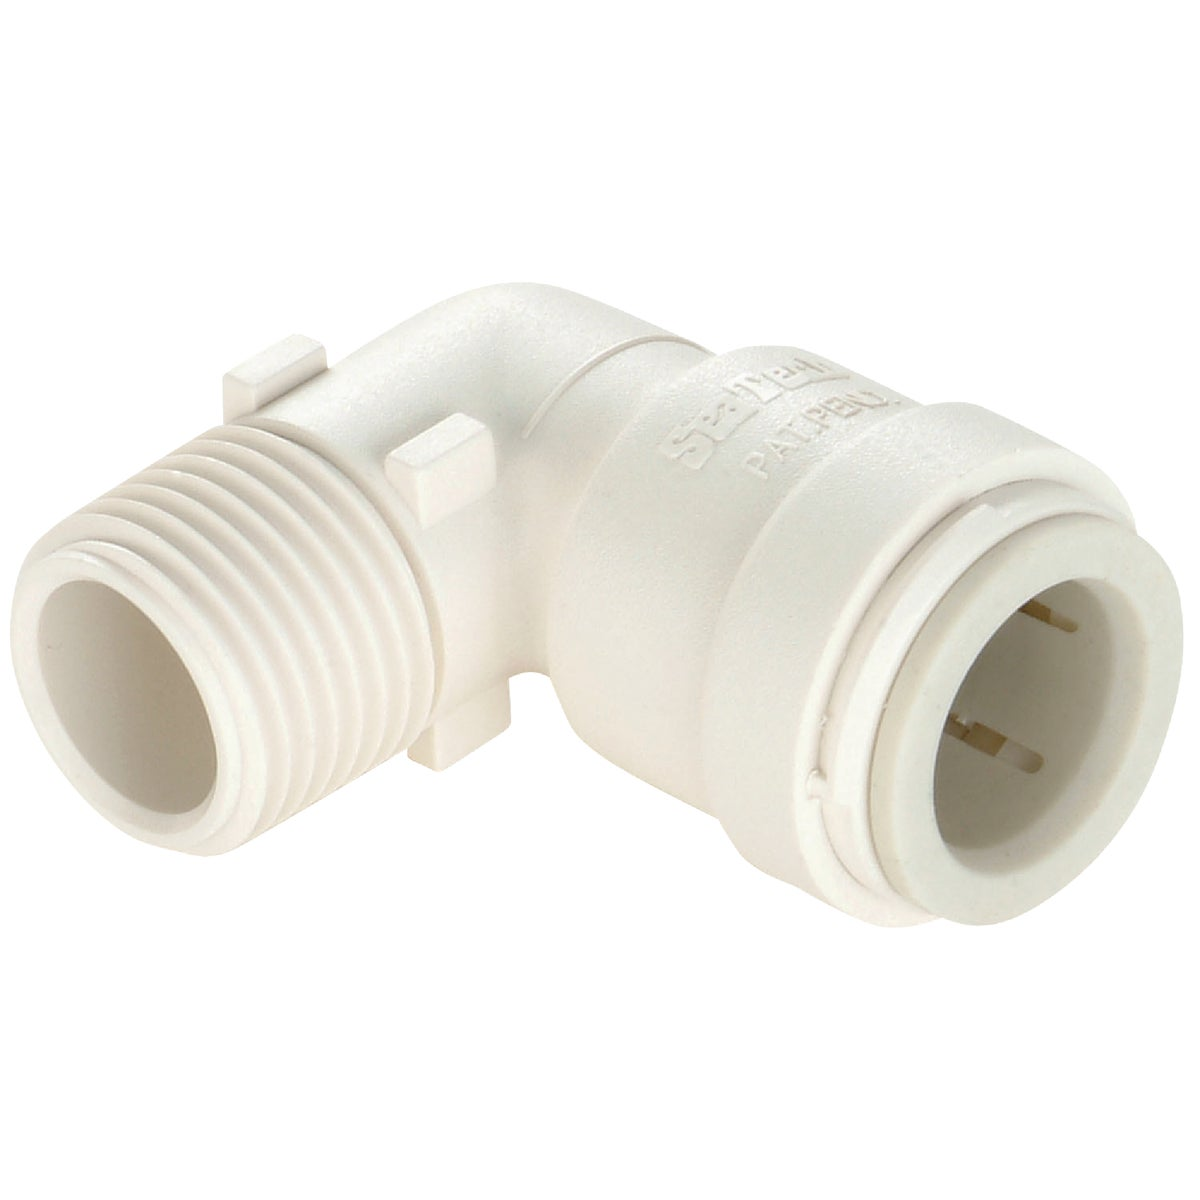 1/2CTSX1/2MPT Q/C ELBOW - P-630 by Watts Pex